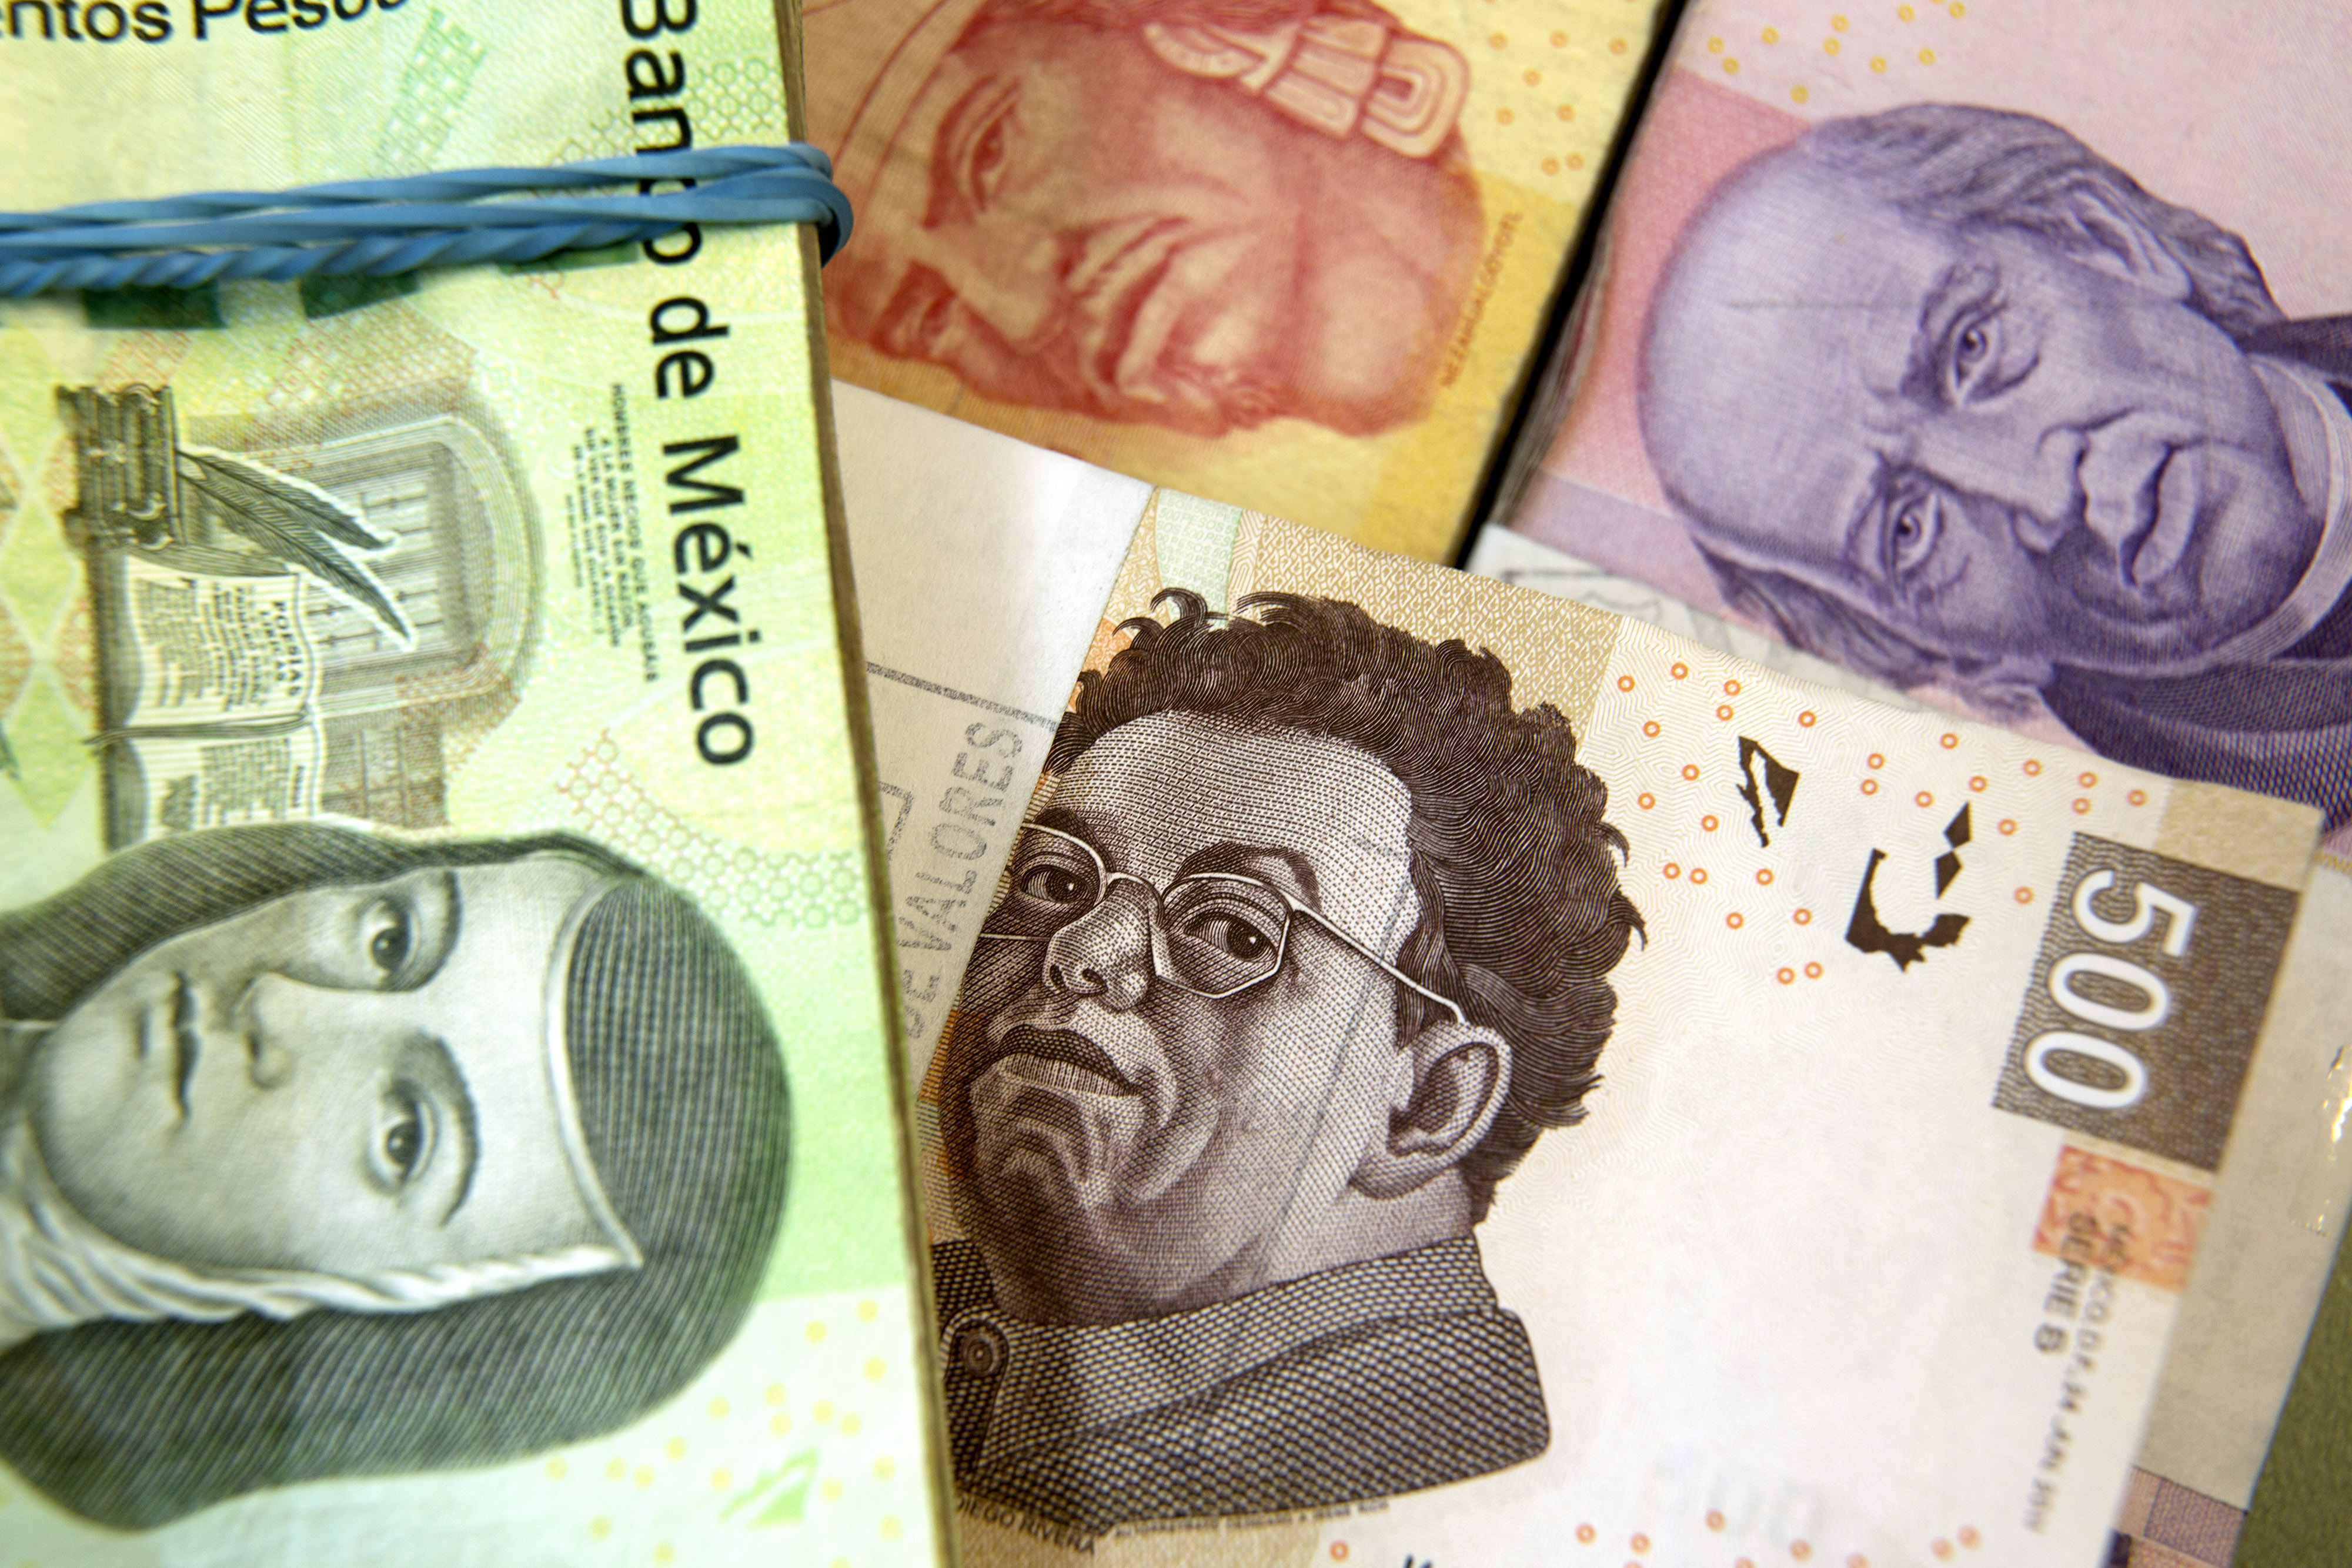 Mexican Bond Returns Bolstered By Rise in Peso